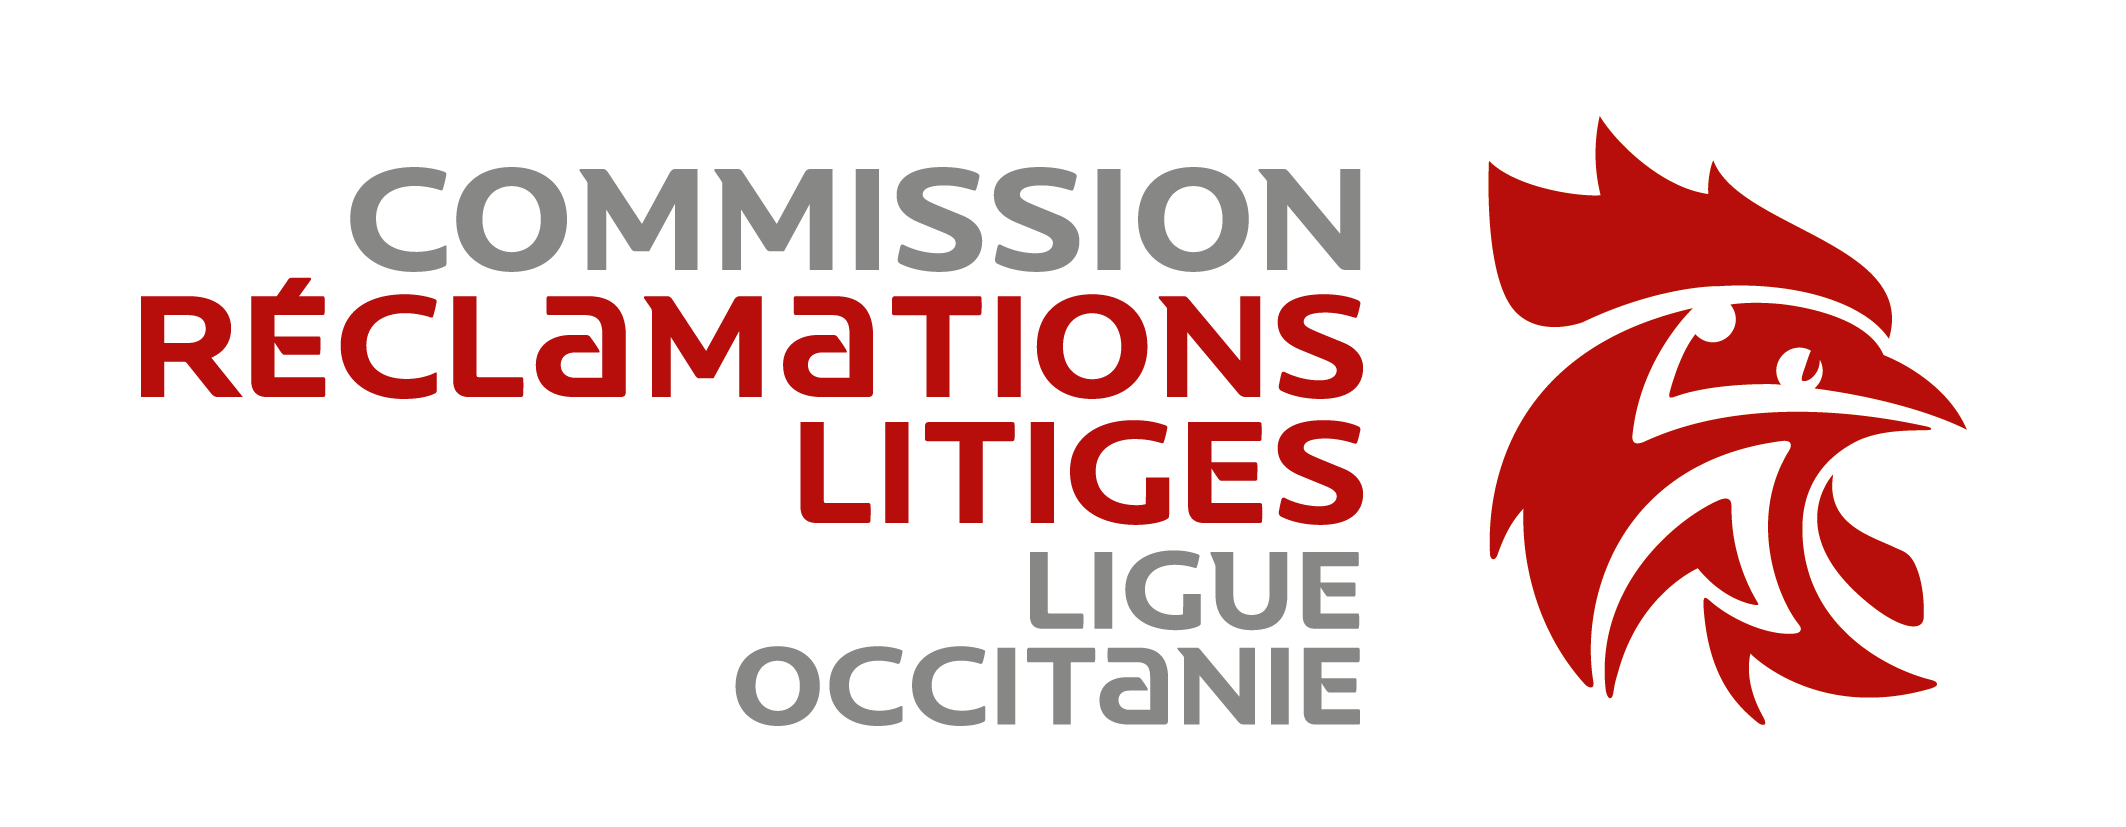 Commission Réclamations